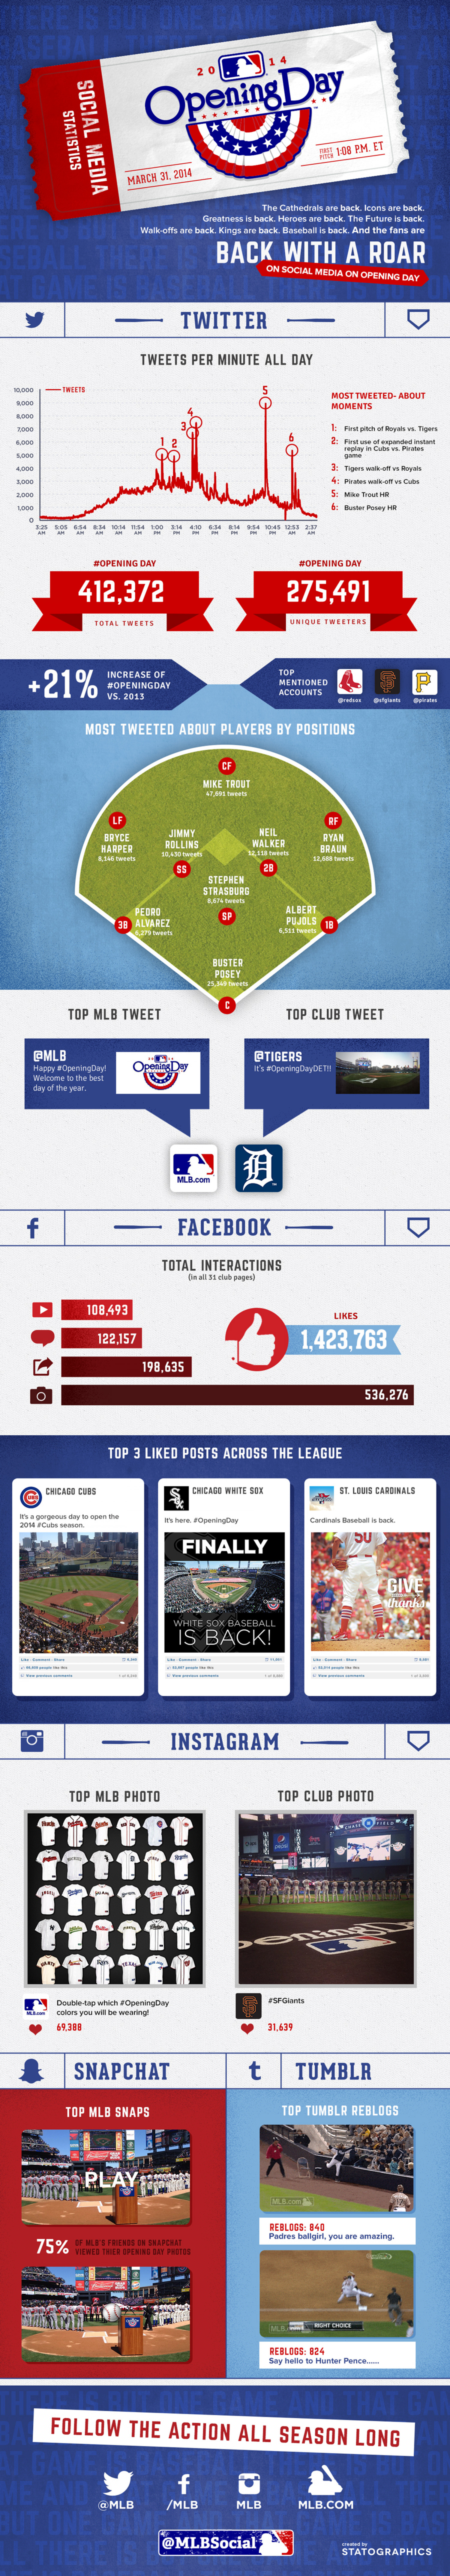 MLB Opening Day 2014 Social Media Stats Infographic  Infographic